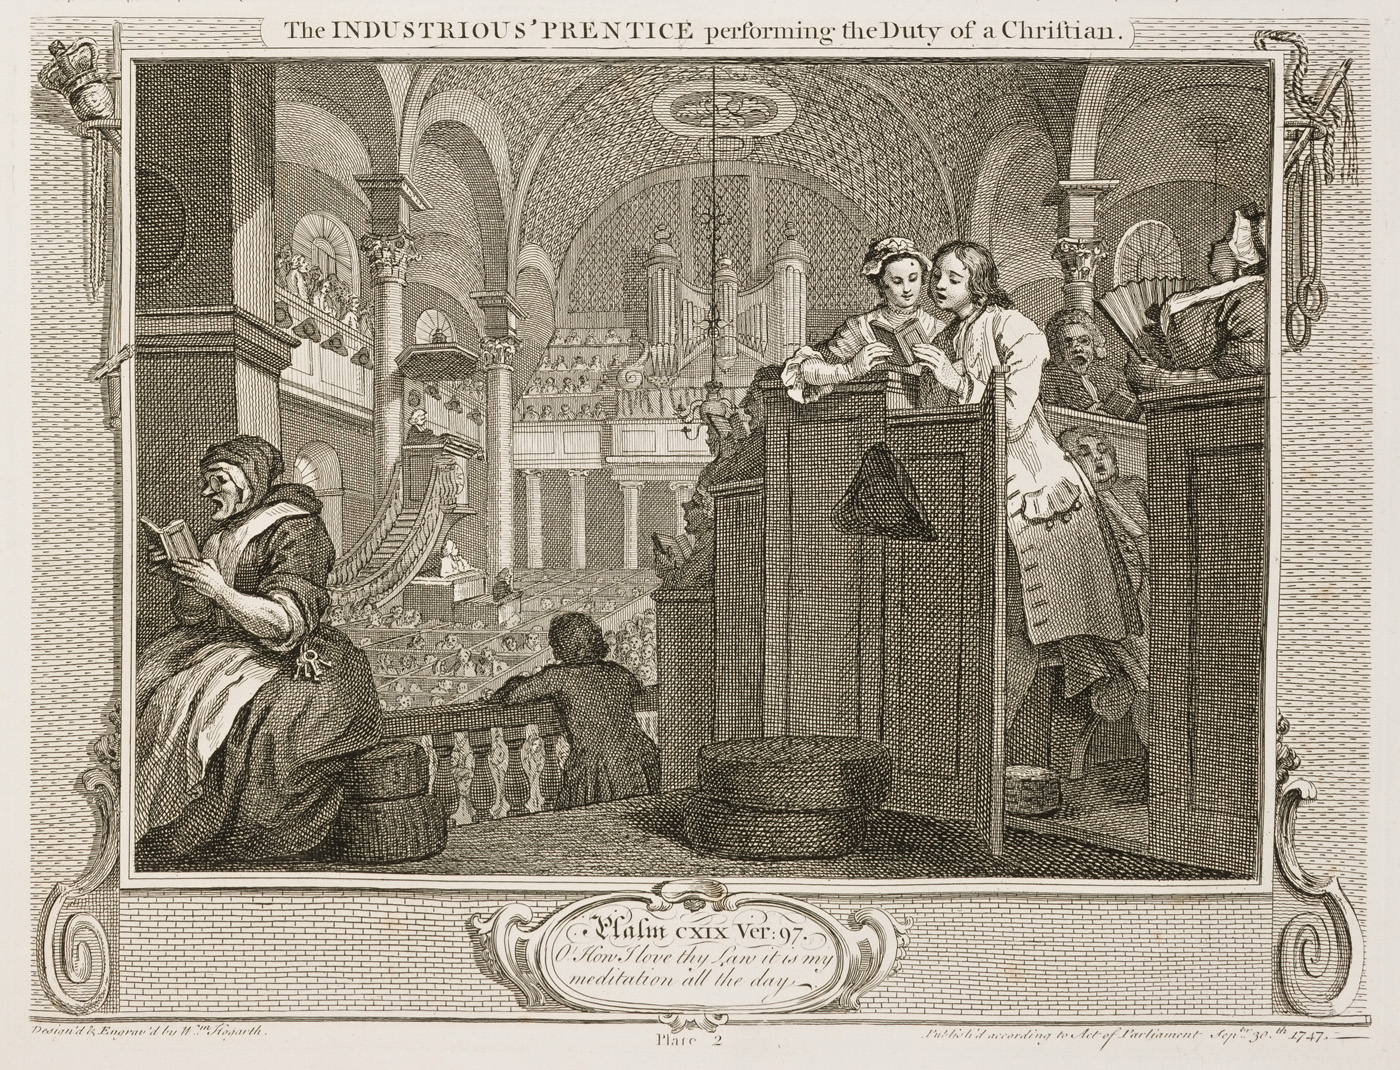 William Hogarth - Industry and Idleness - plate 2